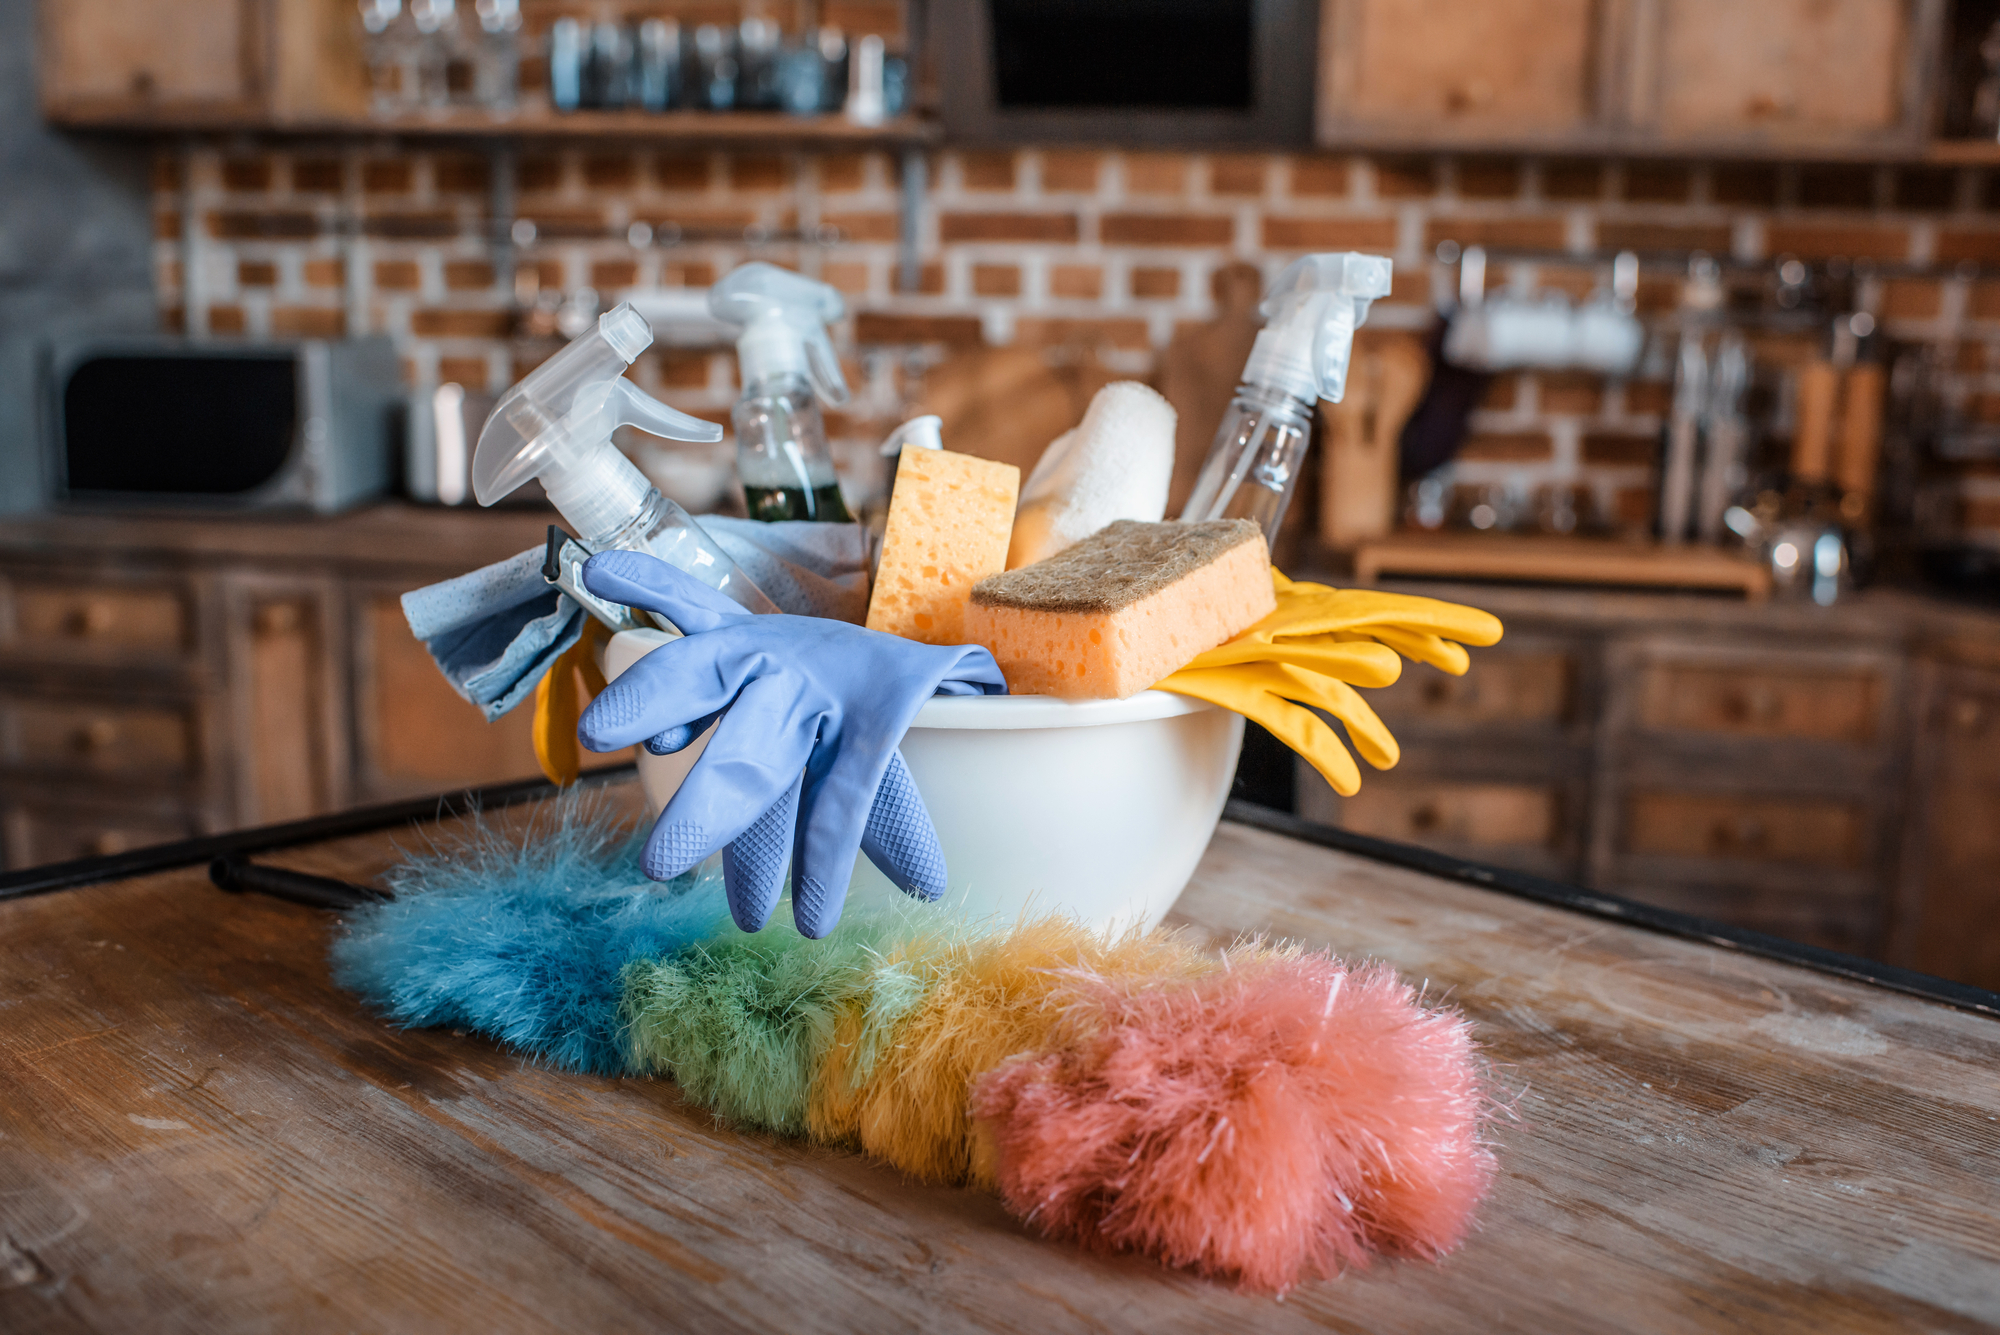 How to Find a Reputable Cleaning Company